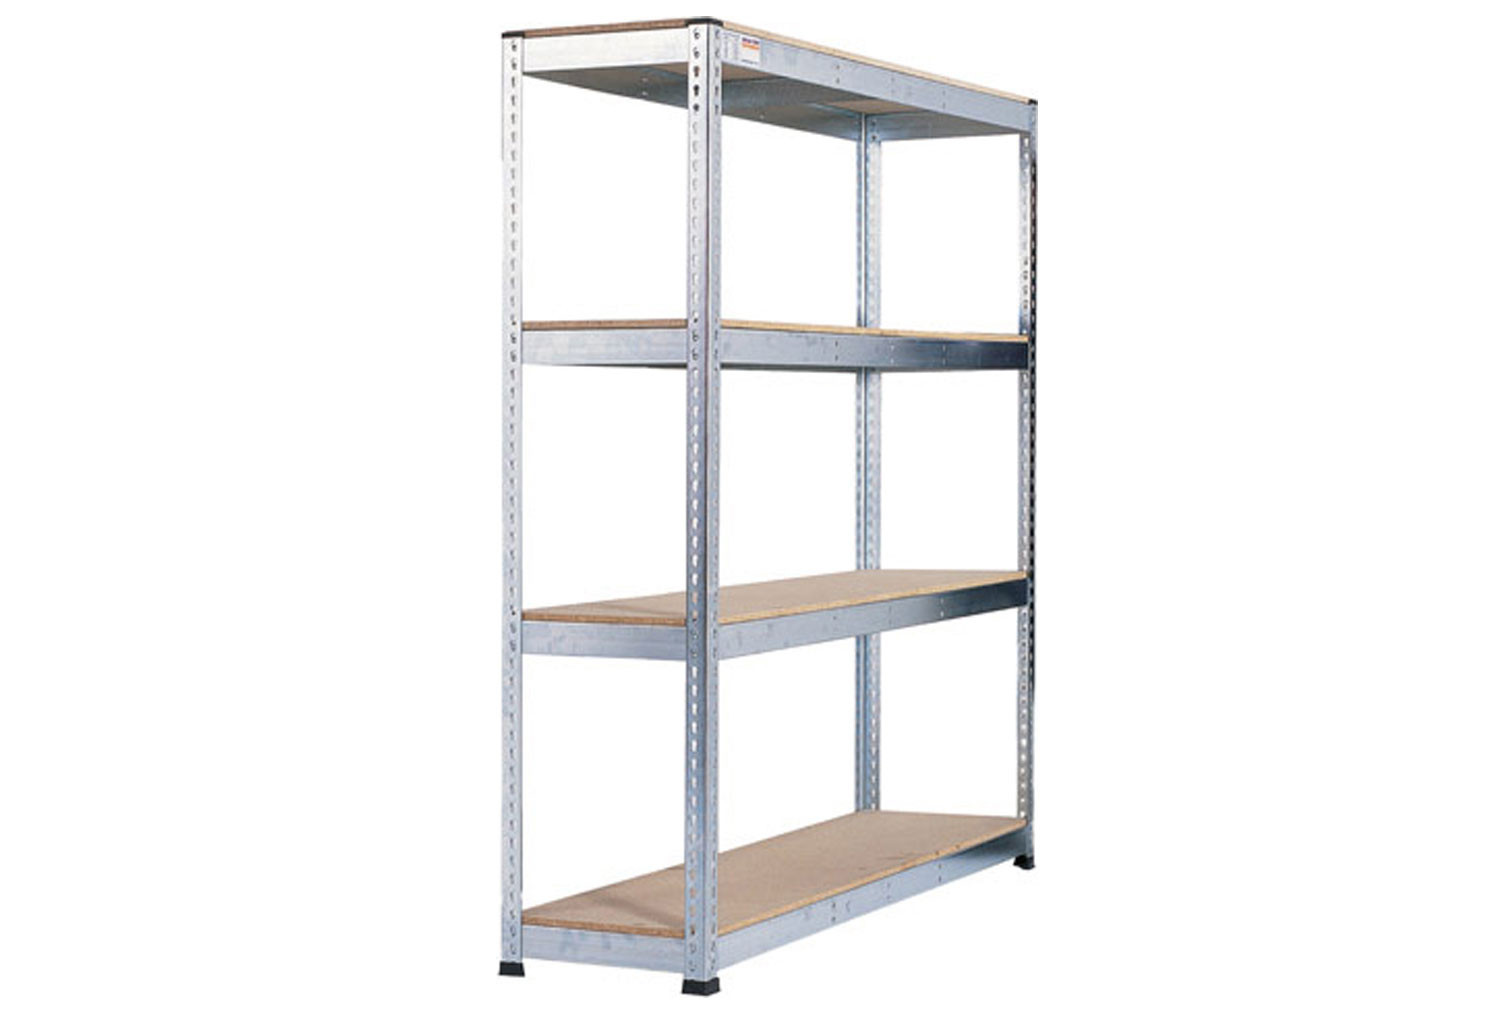 Rapid 1 Heavy Duty Galvanized Shelving With 4 Chipboard Shelves 2440wx1980h